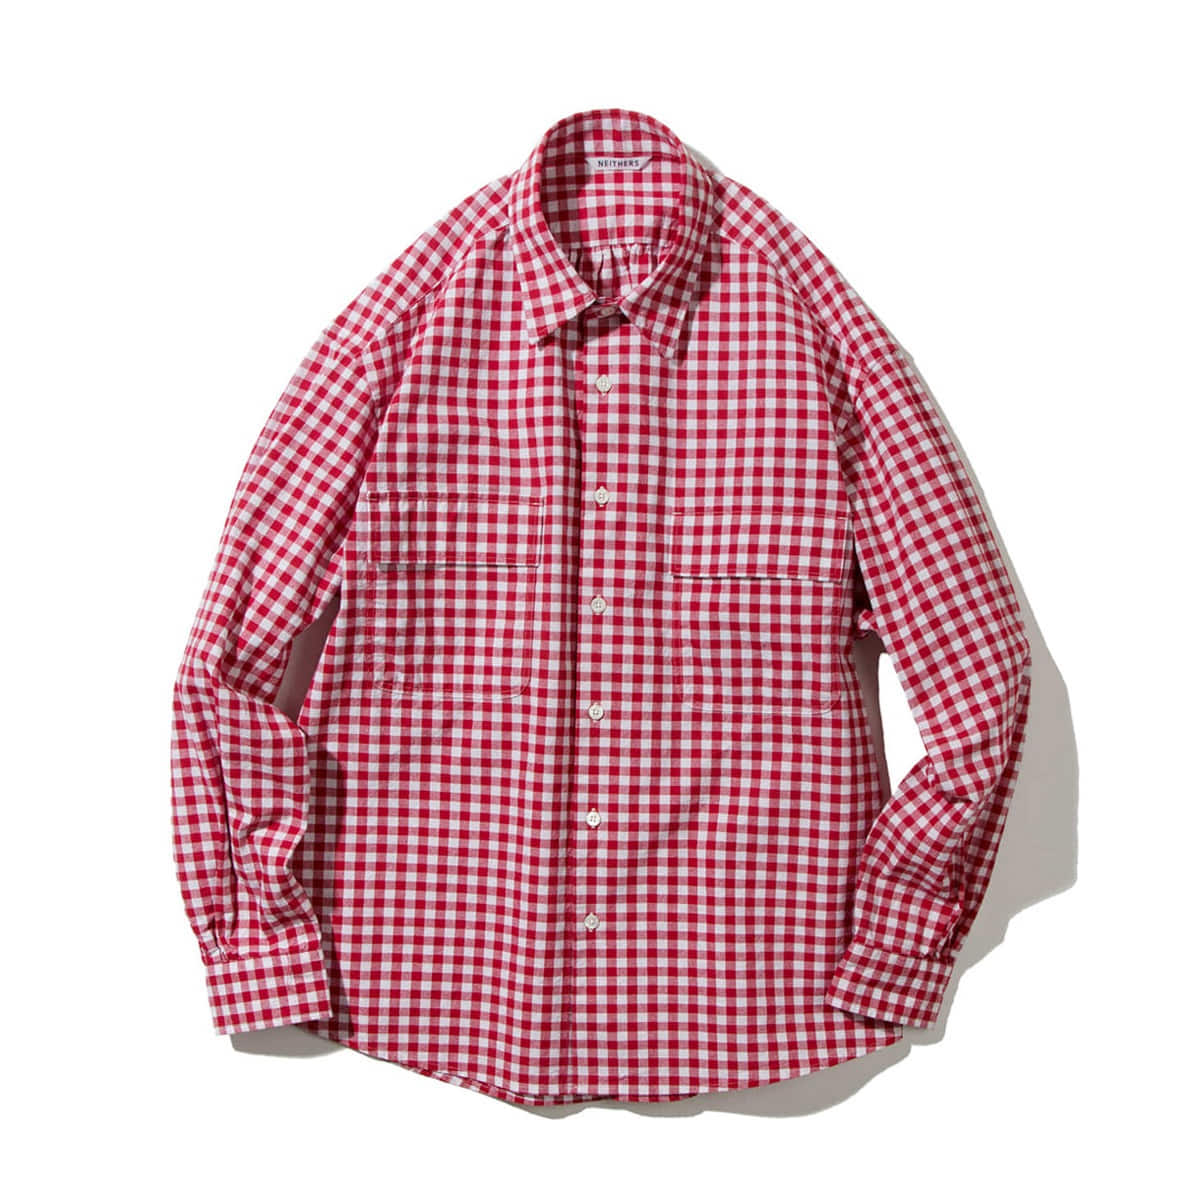 [NEITHERS] 211-14 2-POCKET WIDE SHIRT 'RED/WH'